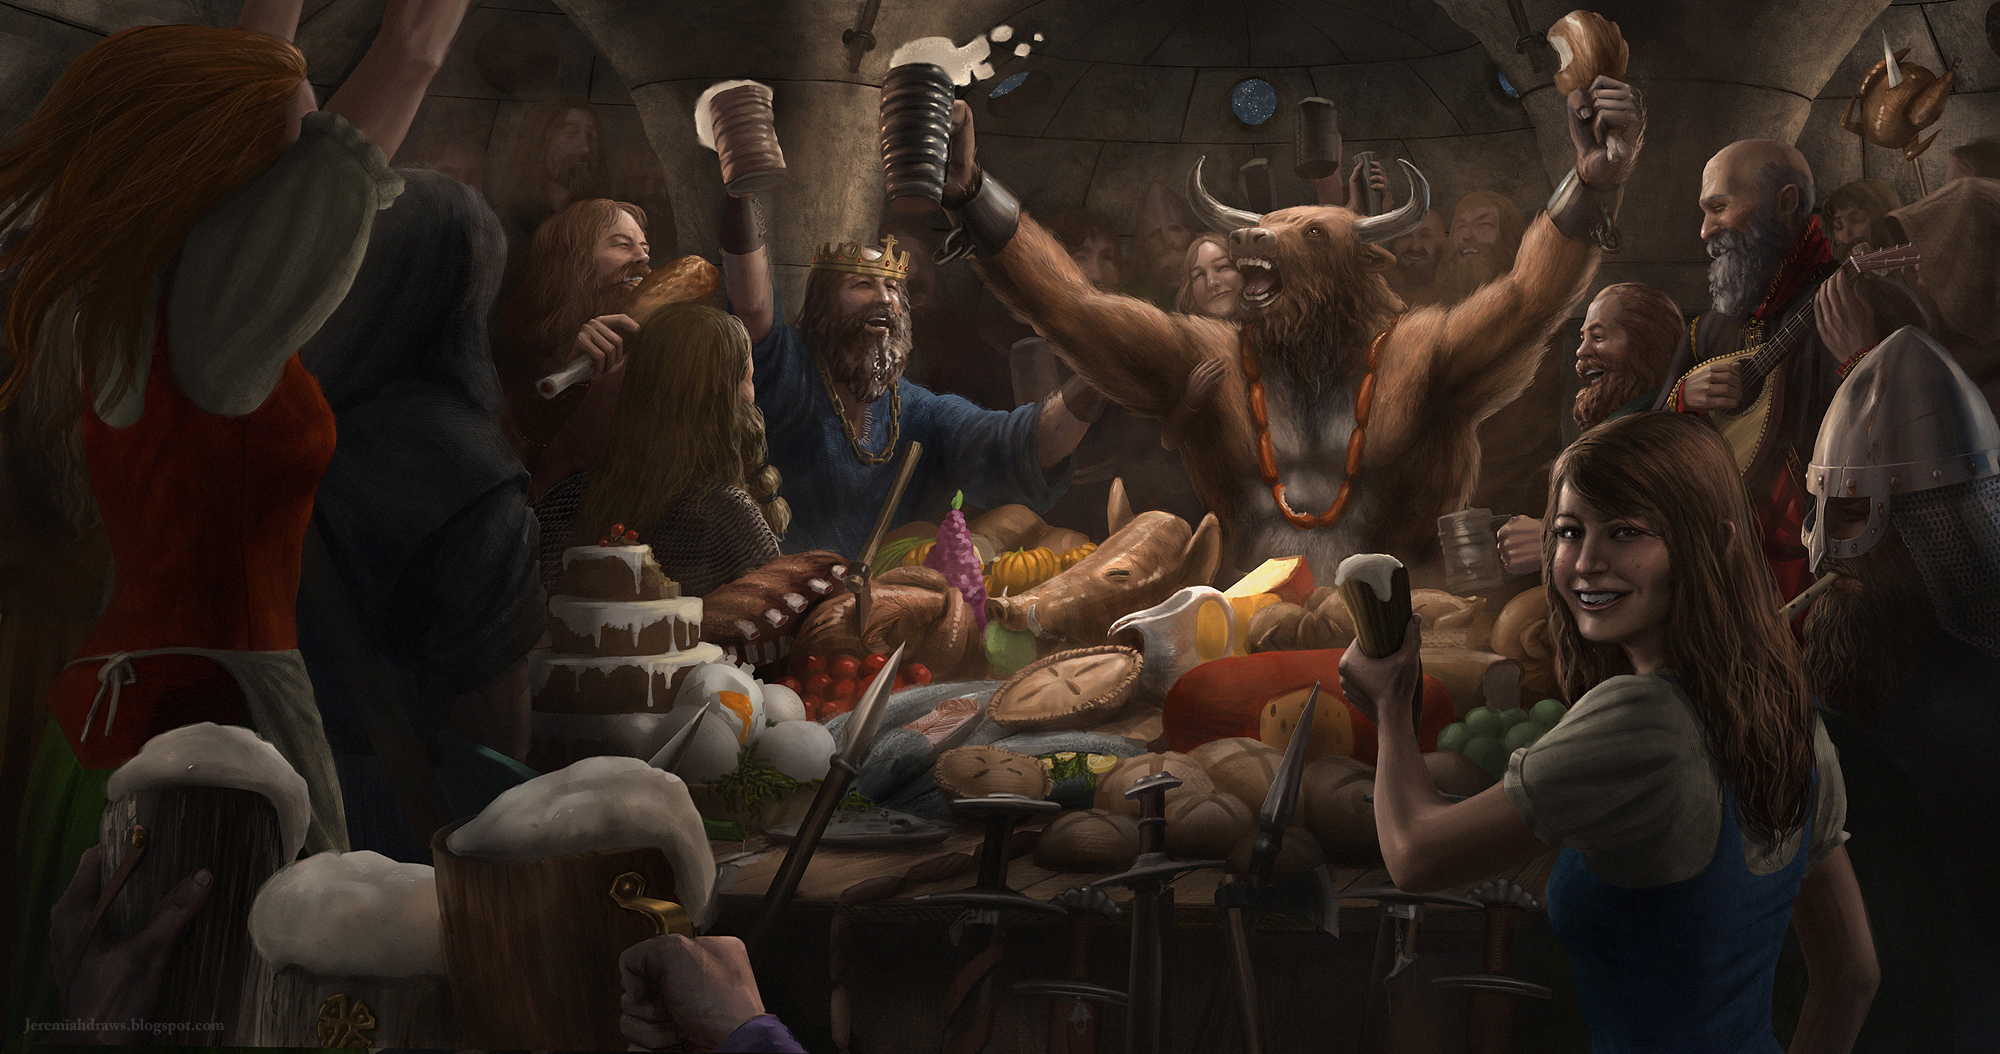 feast_with_the_beast__by_j_humphries-dafllit.jpg